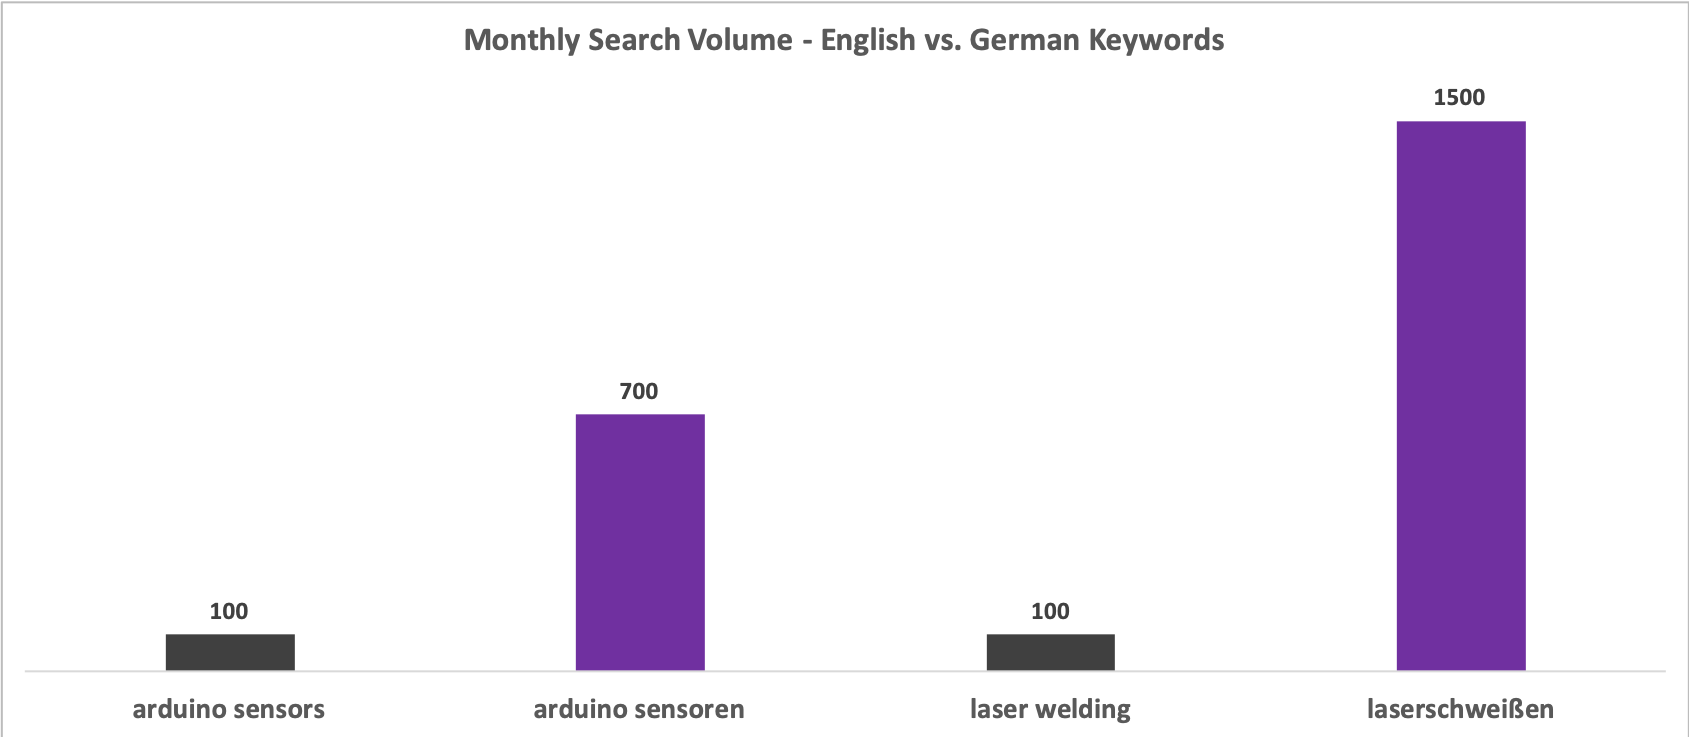 Monthly Search Volume - English vs German Keywords